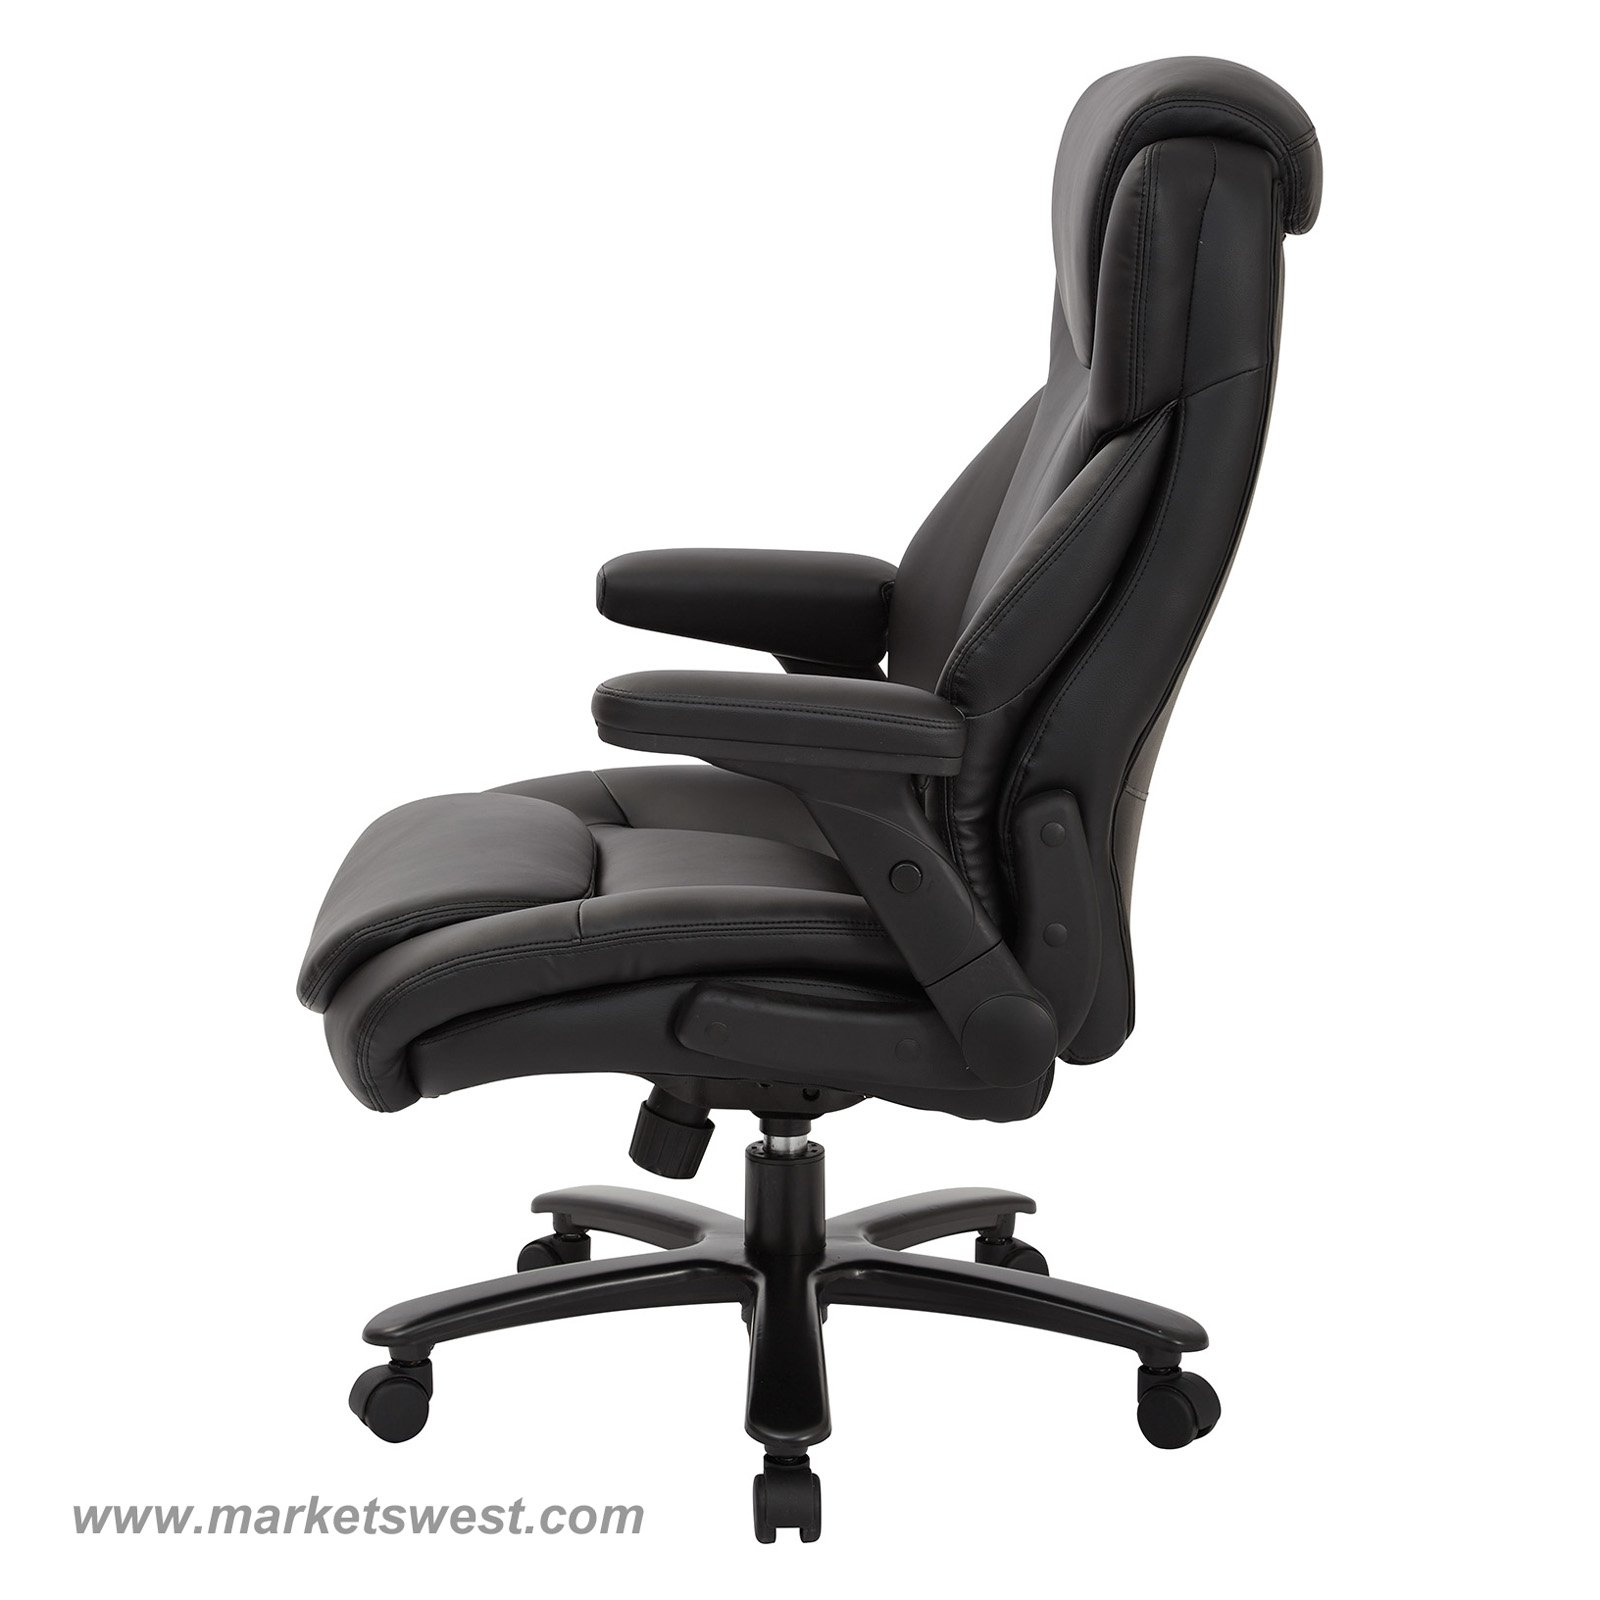 back support for office chairs big w boppy vibrating chair and tall high bonded leather executive with